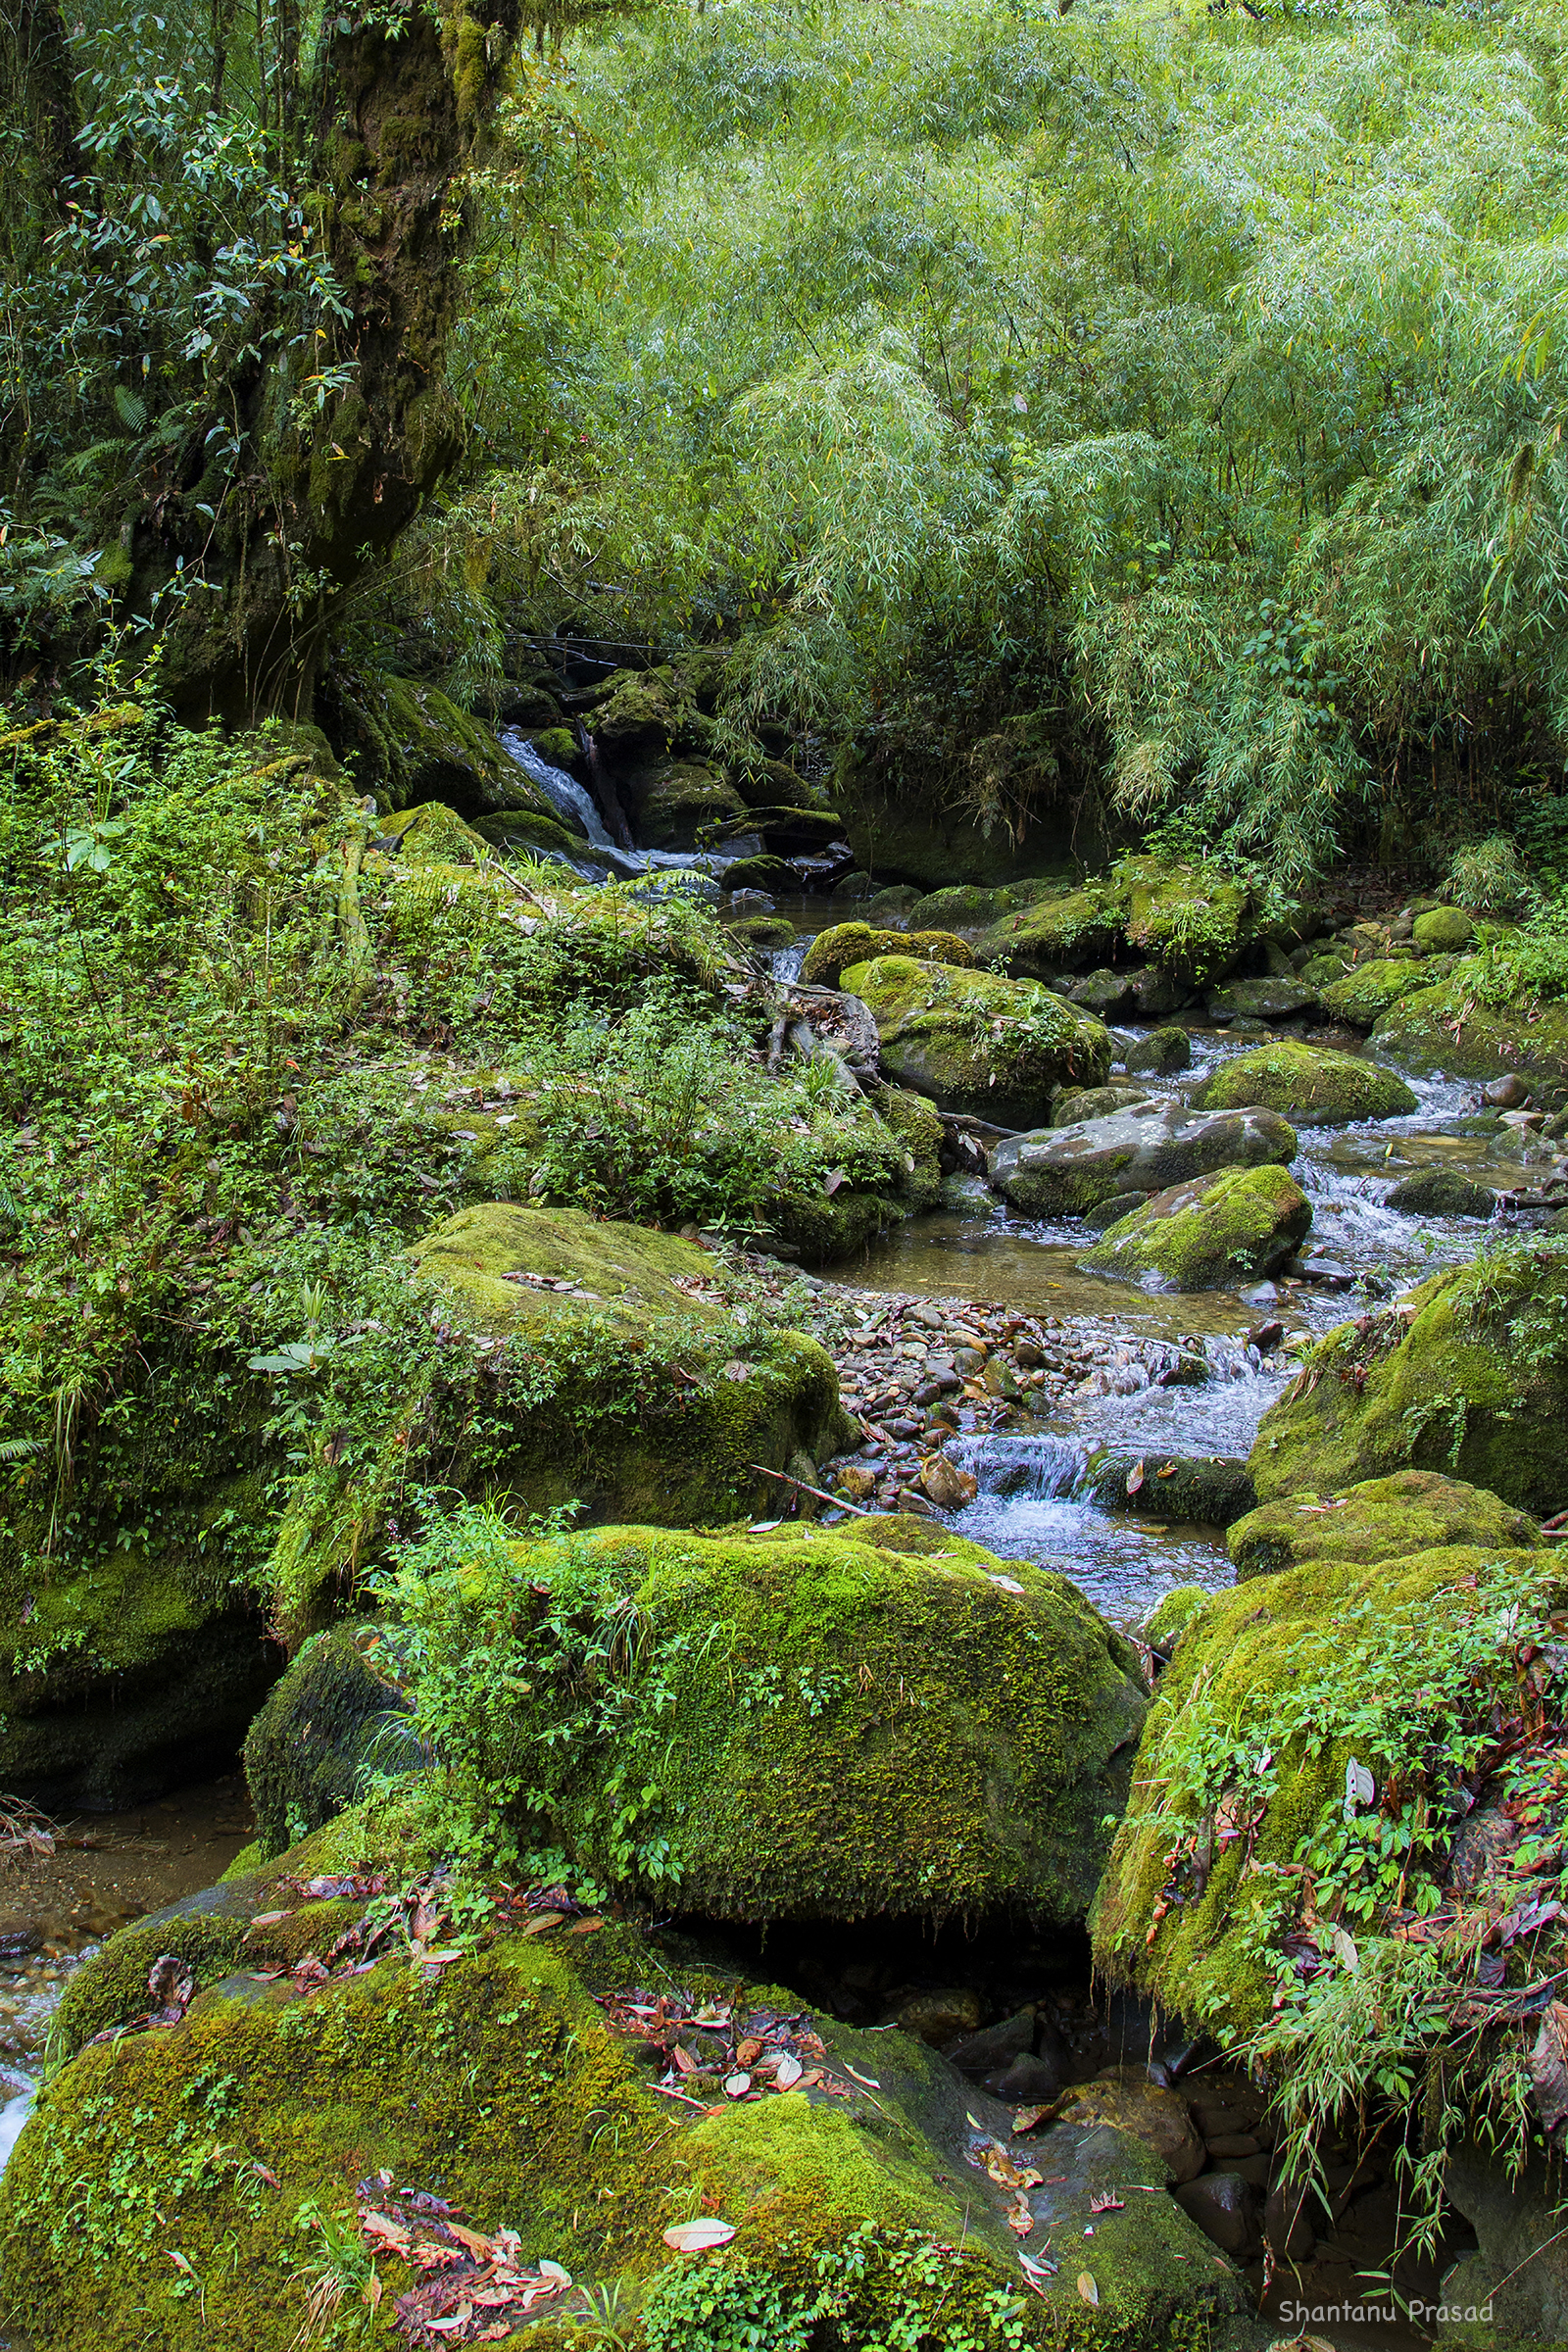 Habitat : Mountain streams in the dense Bamboo Forests.